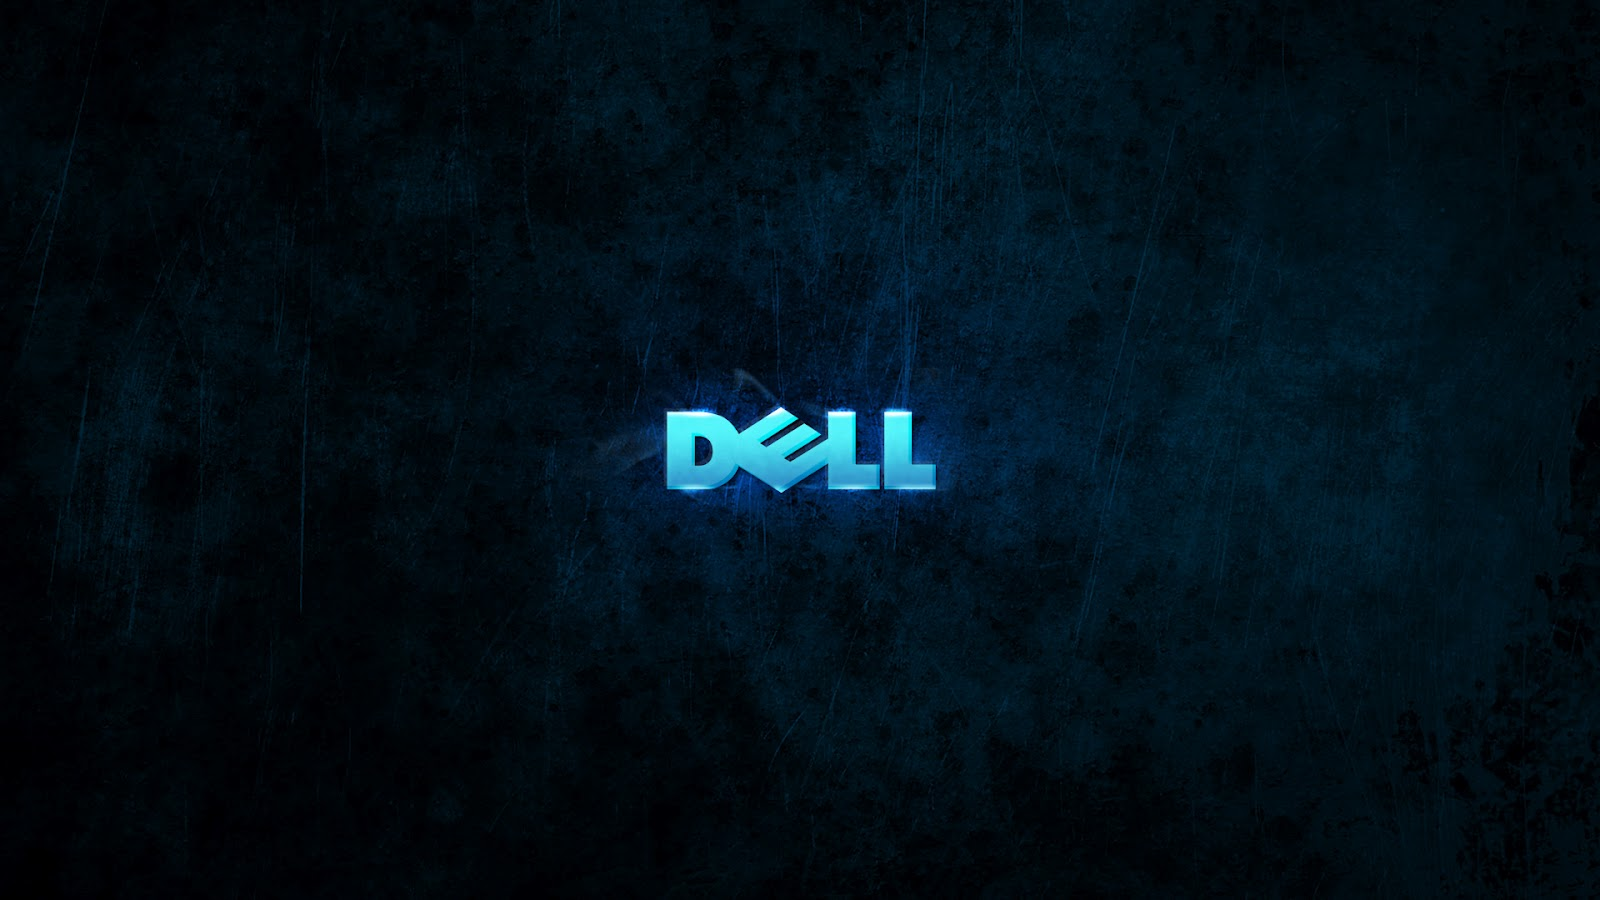 Dell Wallpaper: Dell HD Wallpaper 1920x1080